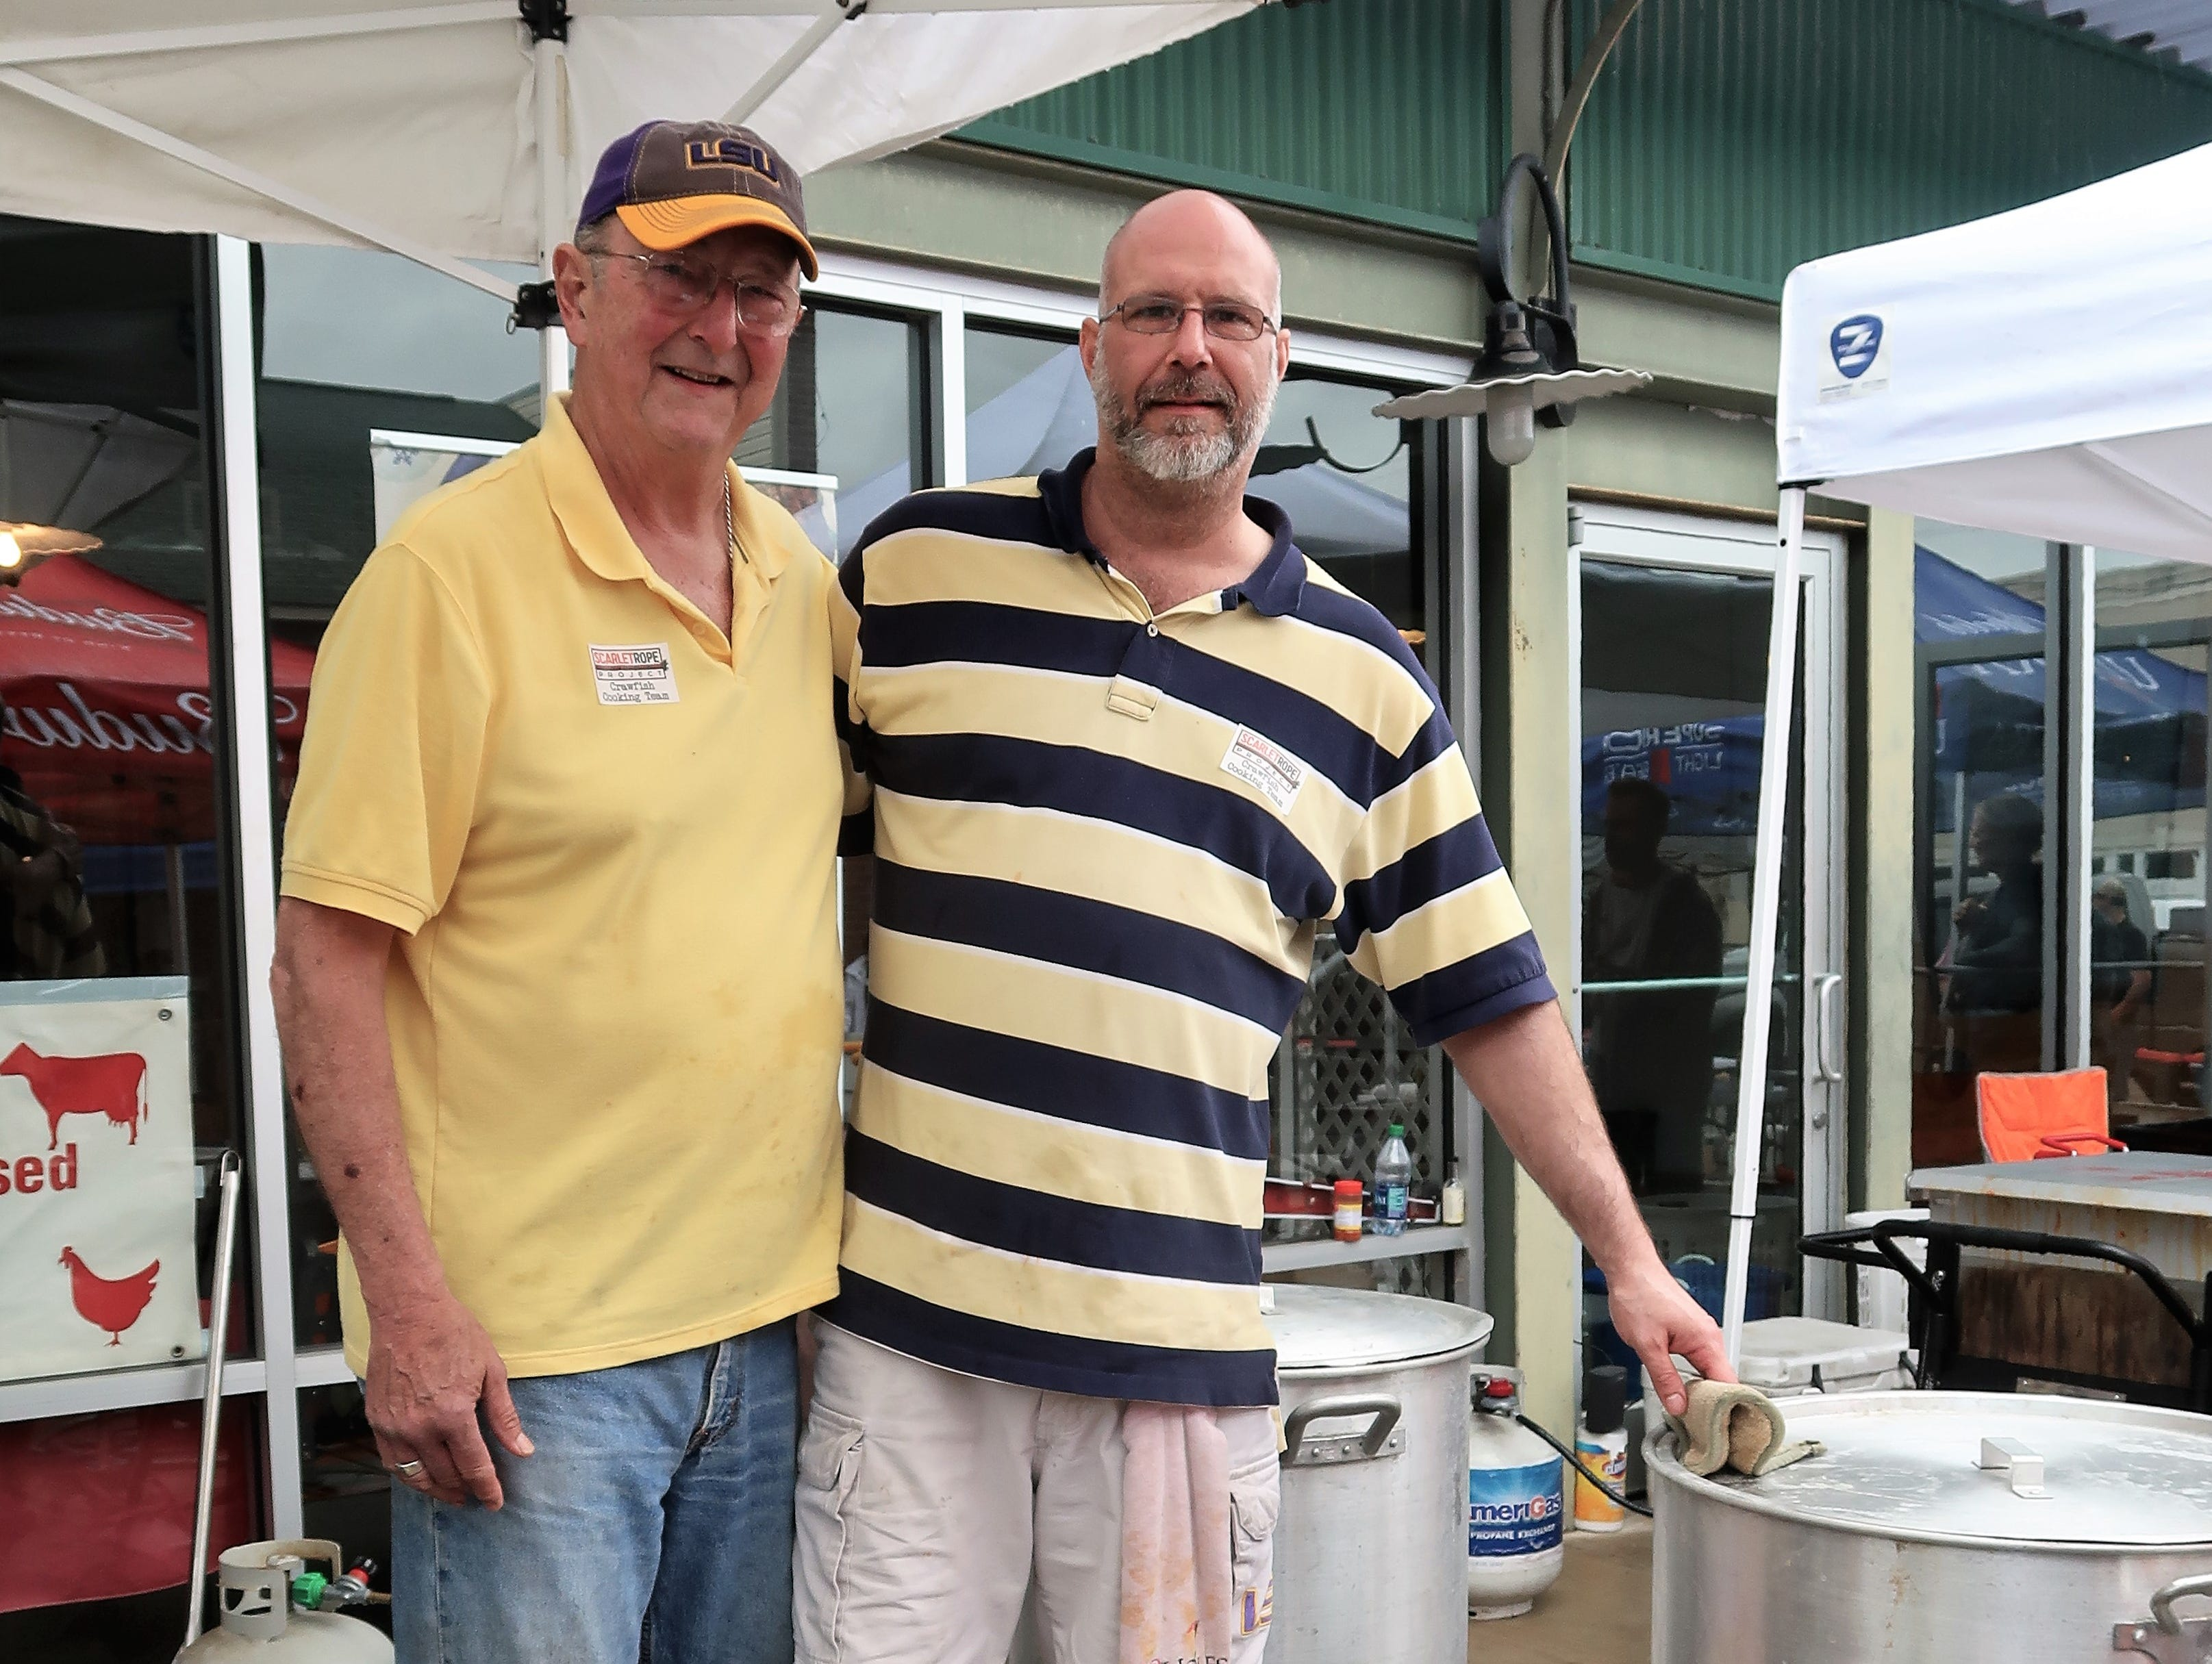 Jim Moss and Jimmy Moss pose at their crawfish boiling station at the Second Annual Crawfest fundraiser for the Scarlet Rope Project at the West Tennessee Farmer's Market in Jackson on May 4, 2019.